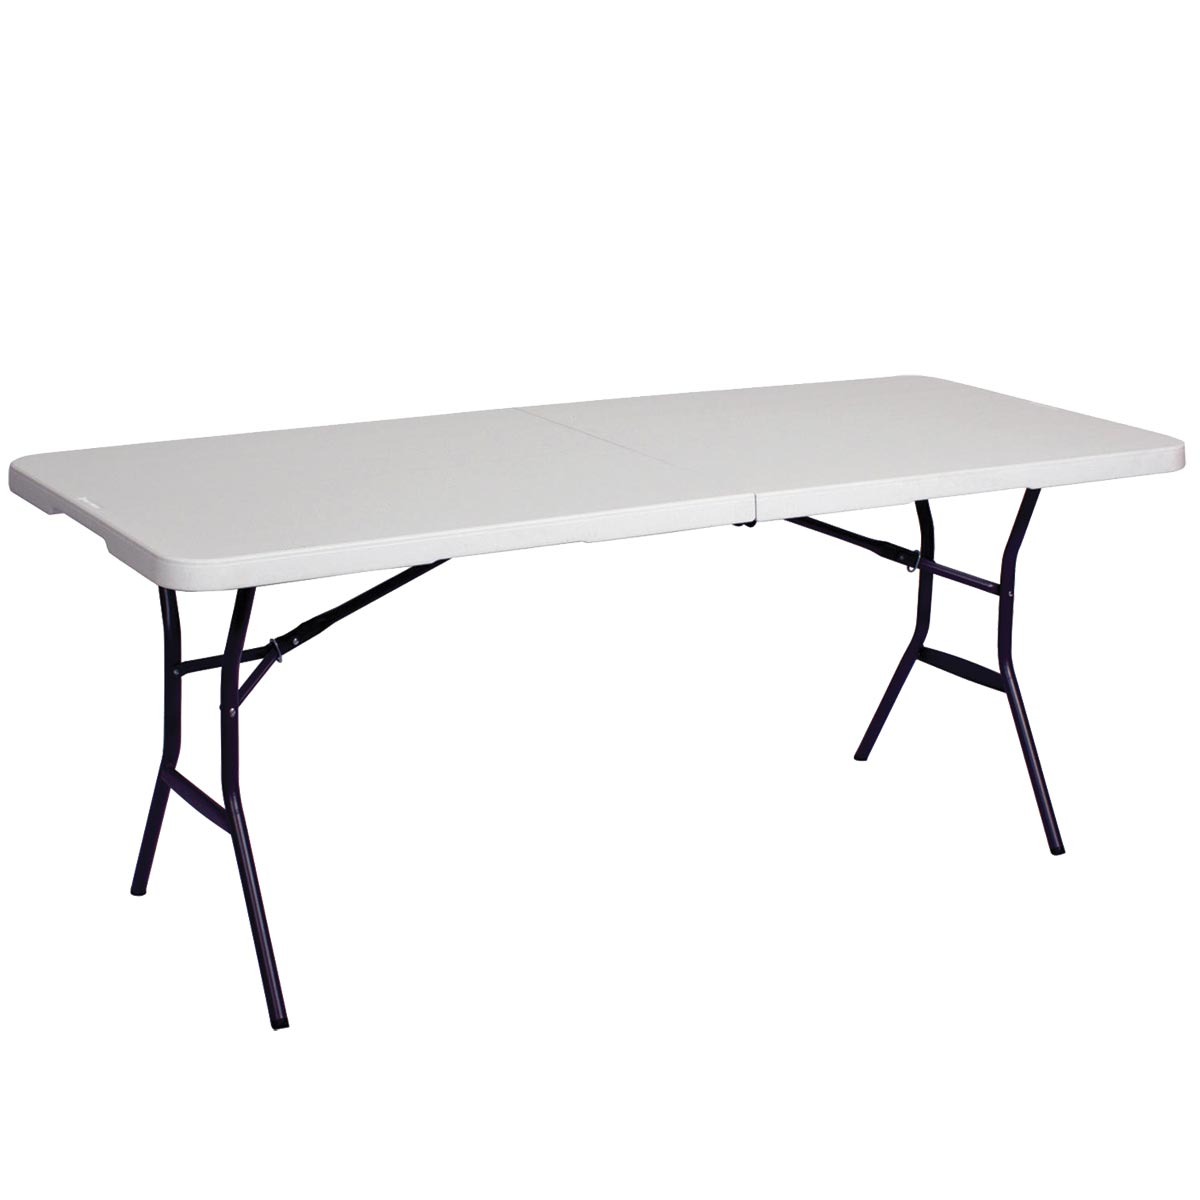 Folding Table, 6 ft